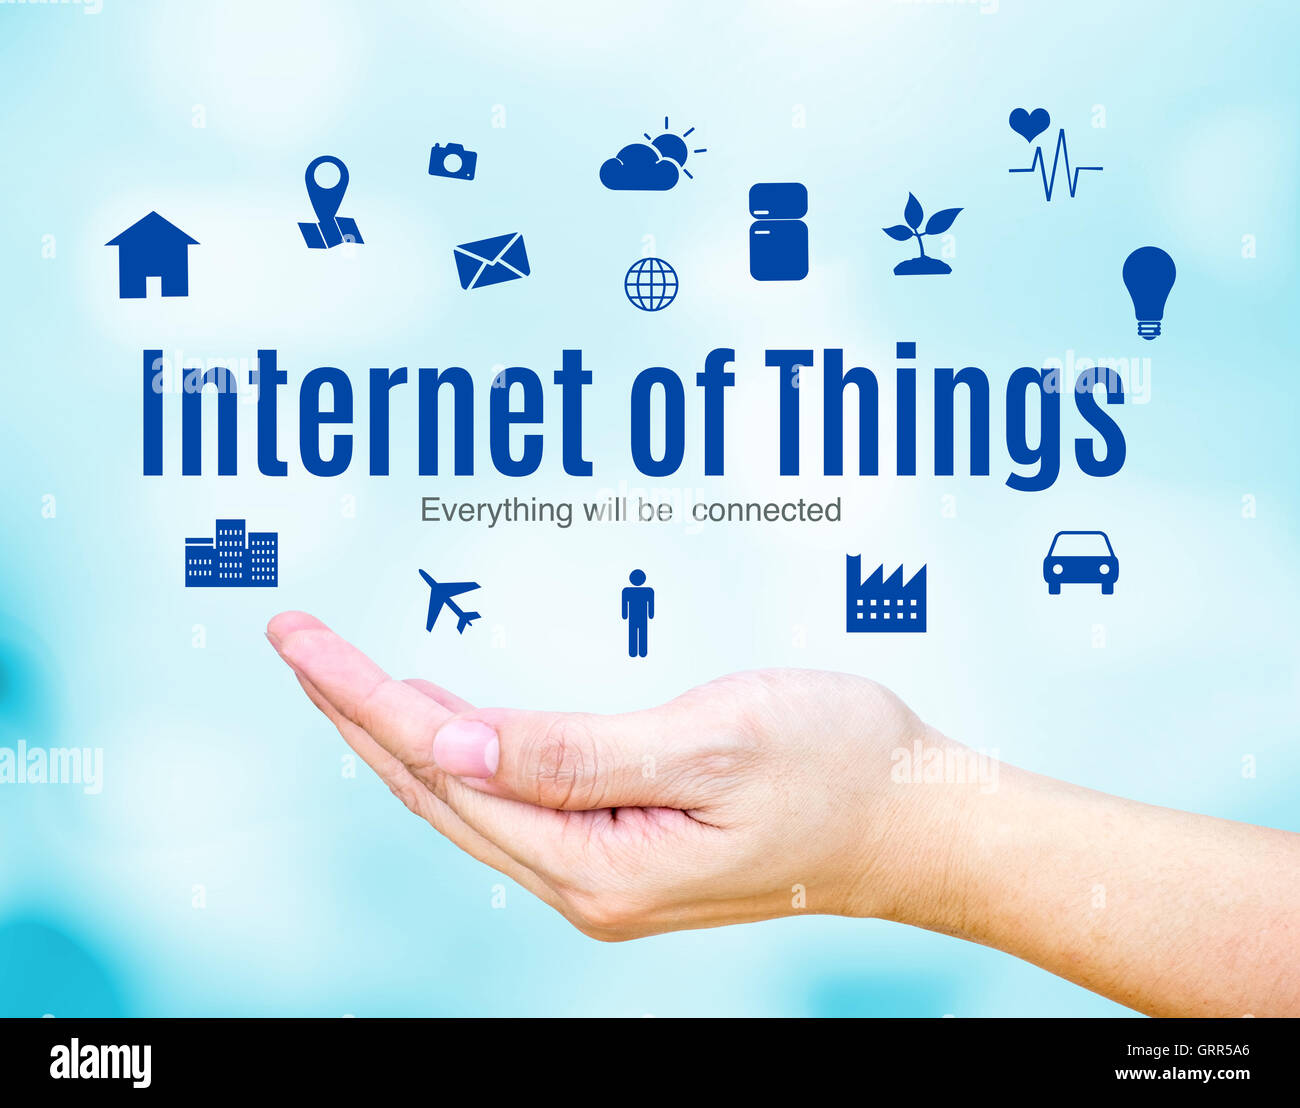 Open hand with Internet of Things (IoT) word and icon on blue blur background, Technology concept. - Stock Image